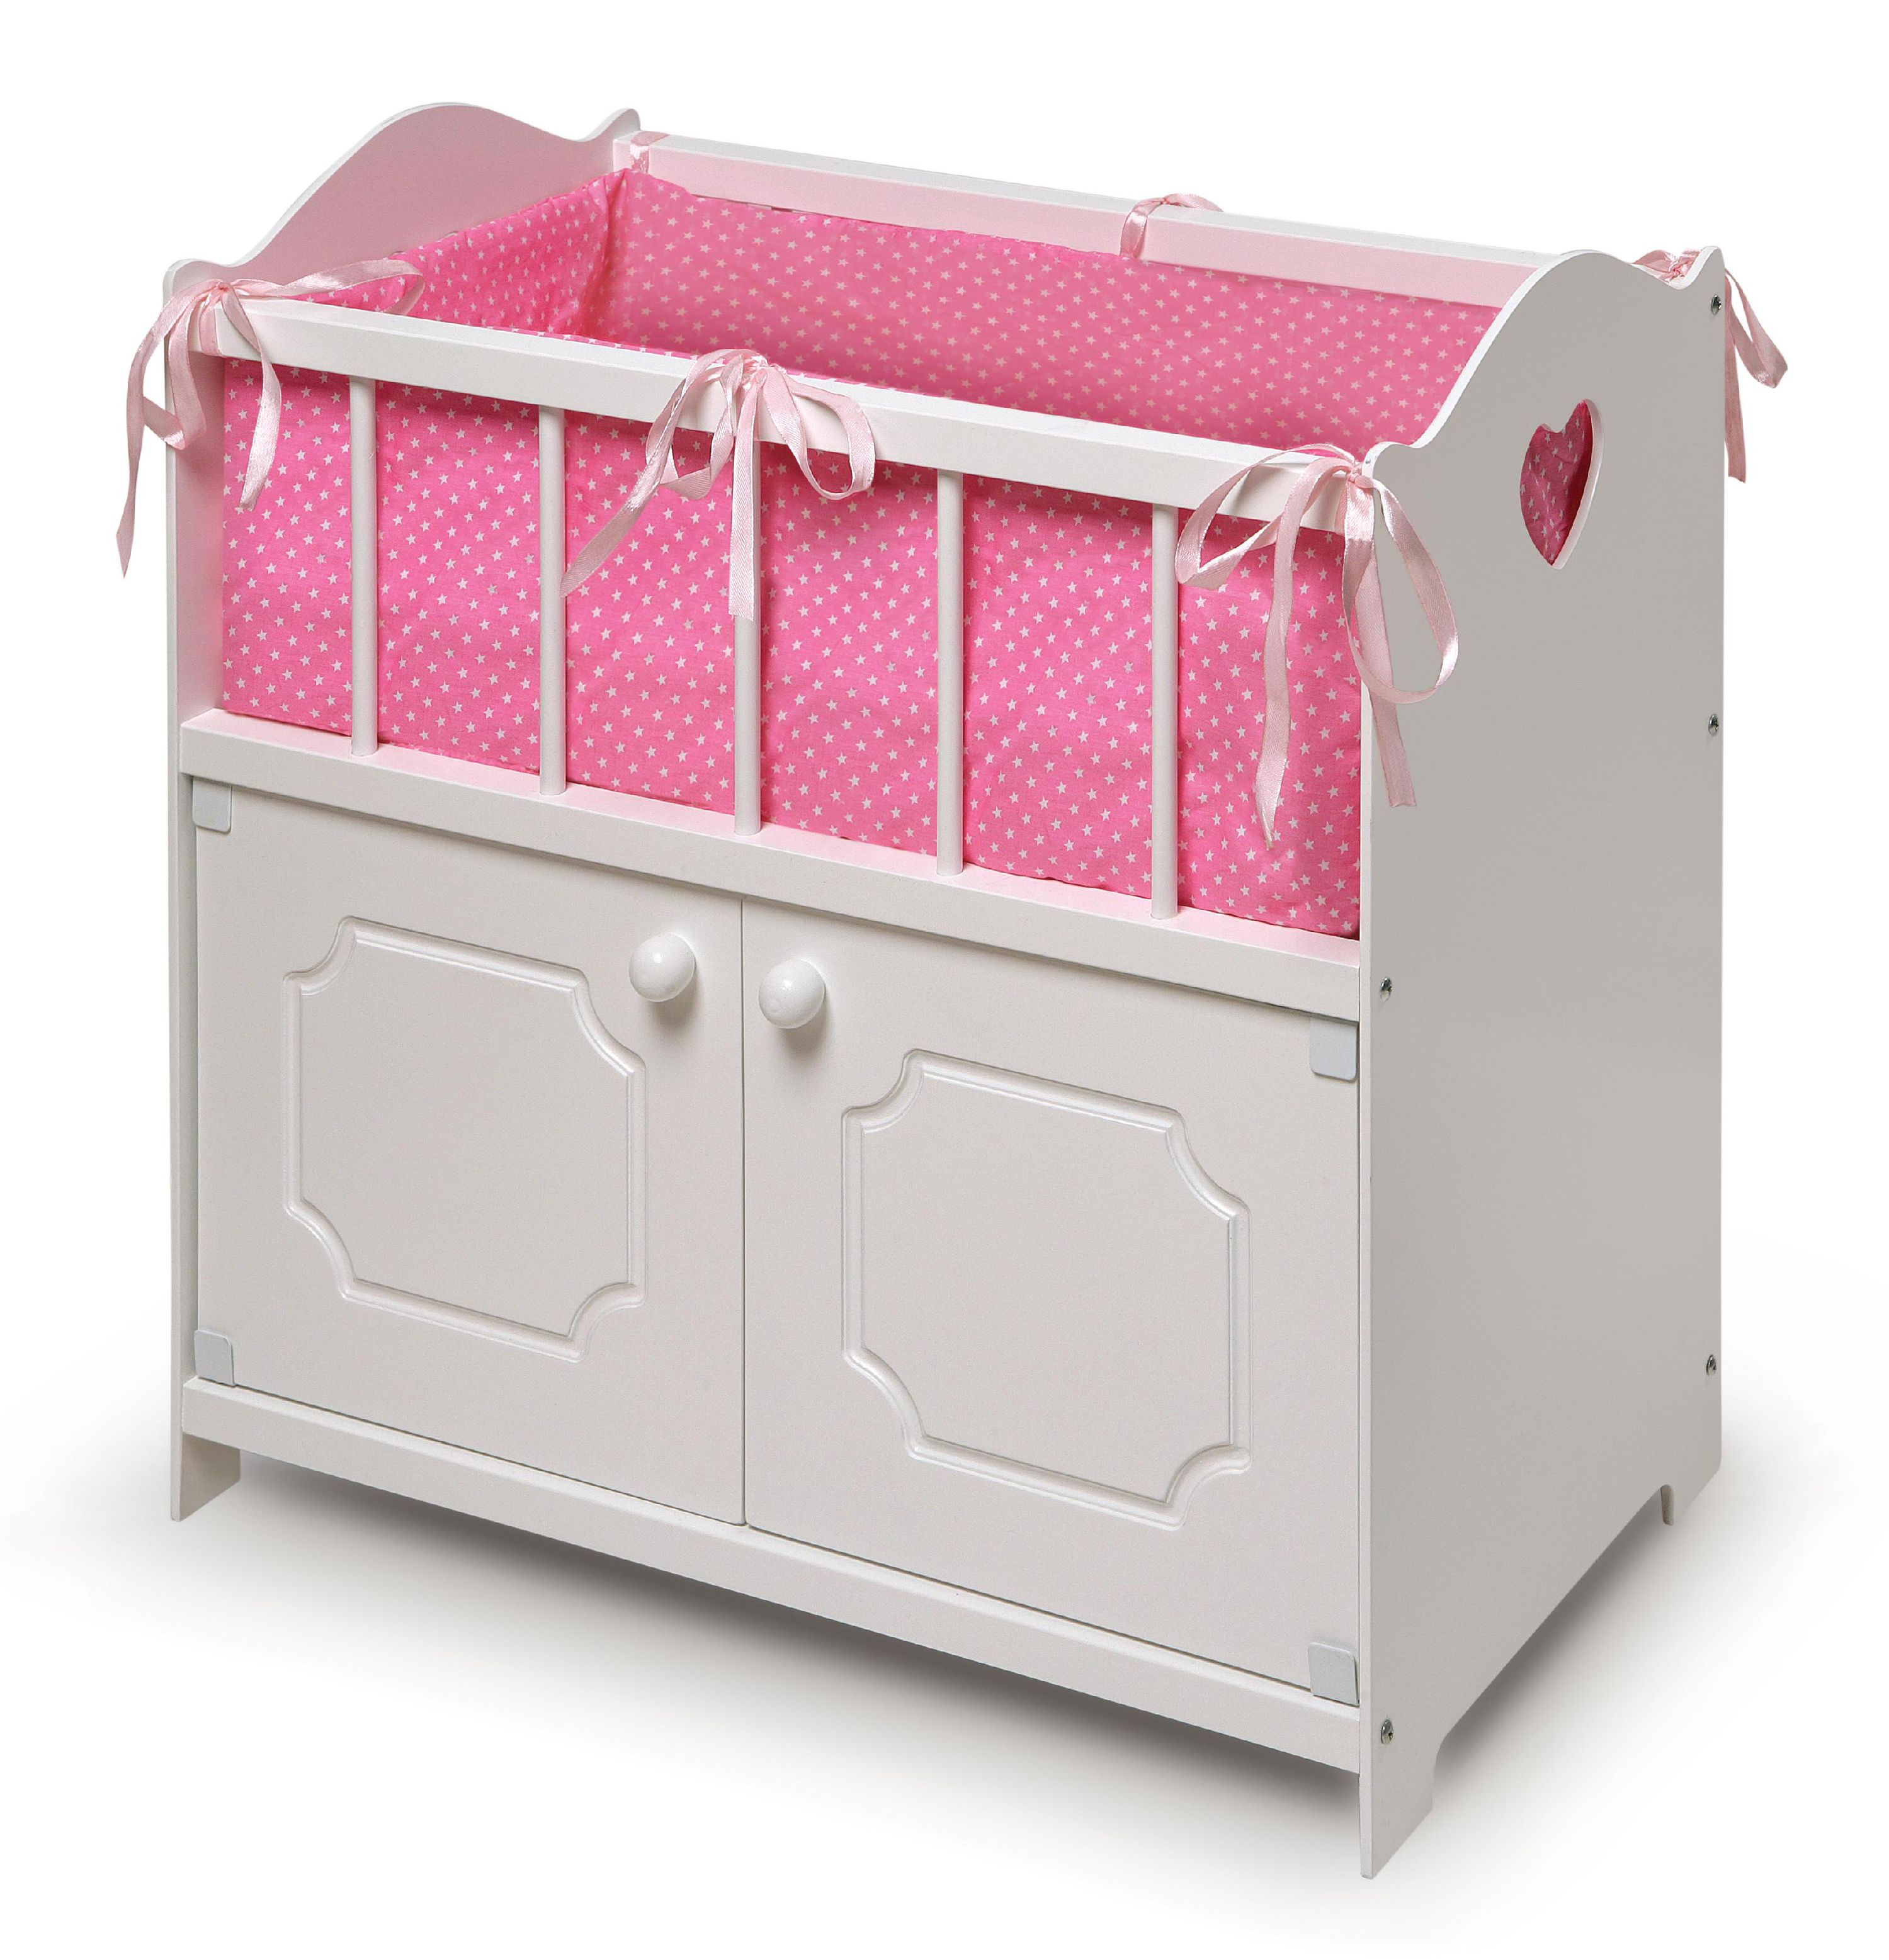 "Badger Basket Storage Doll Crib with Bedding - White - Fits American Girl, My Life As & Most 18"" Dolls"